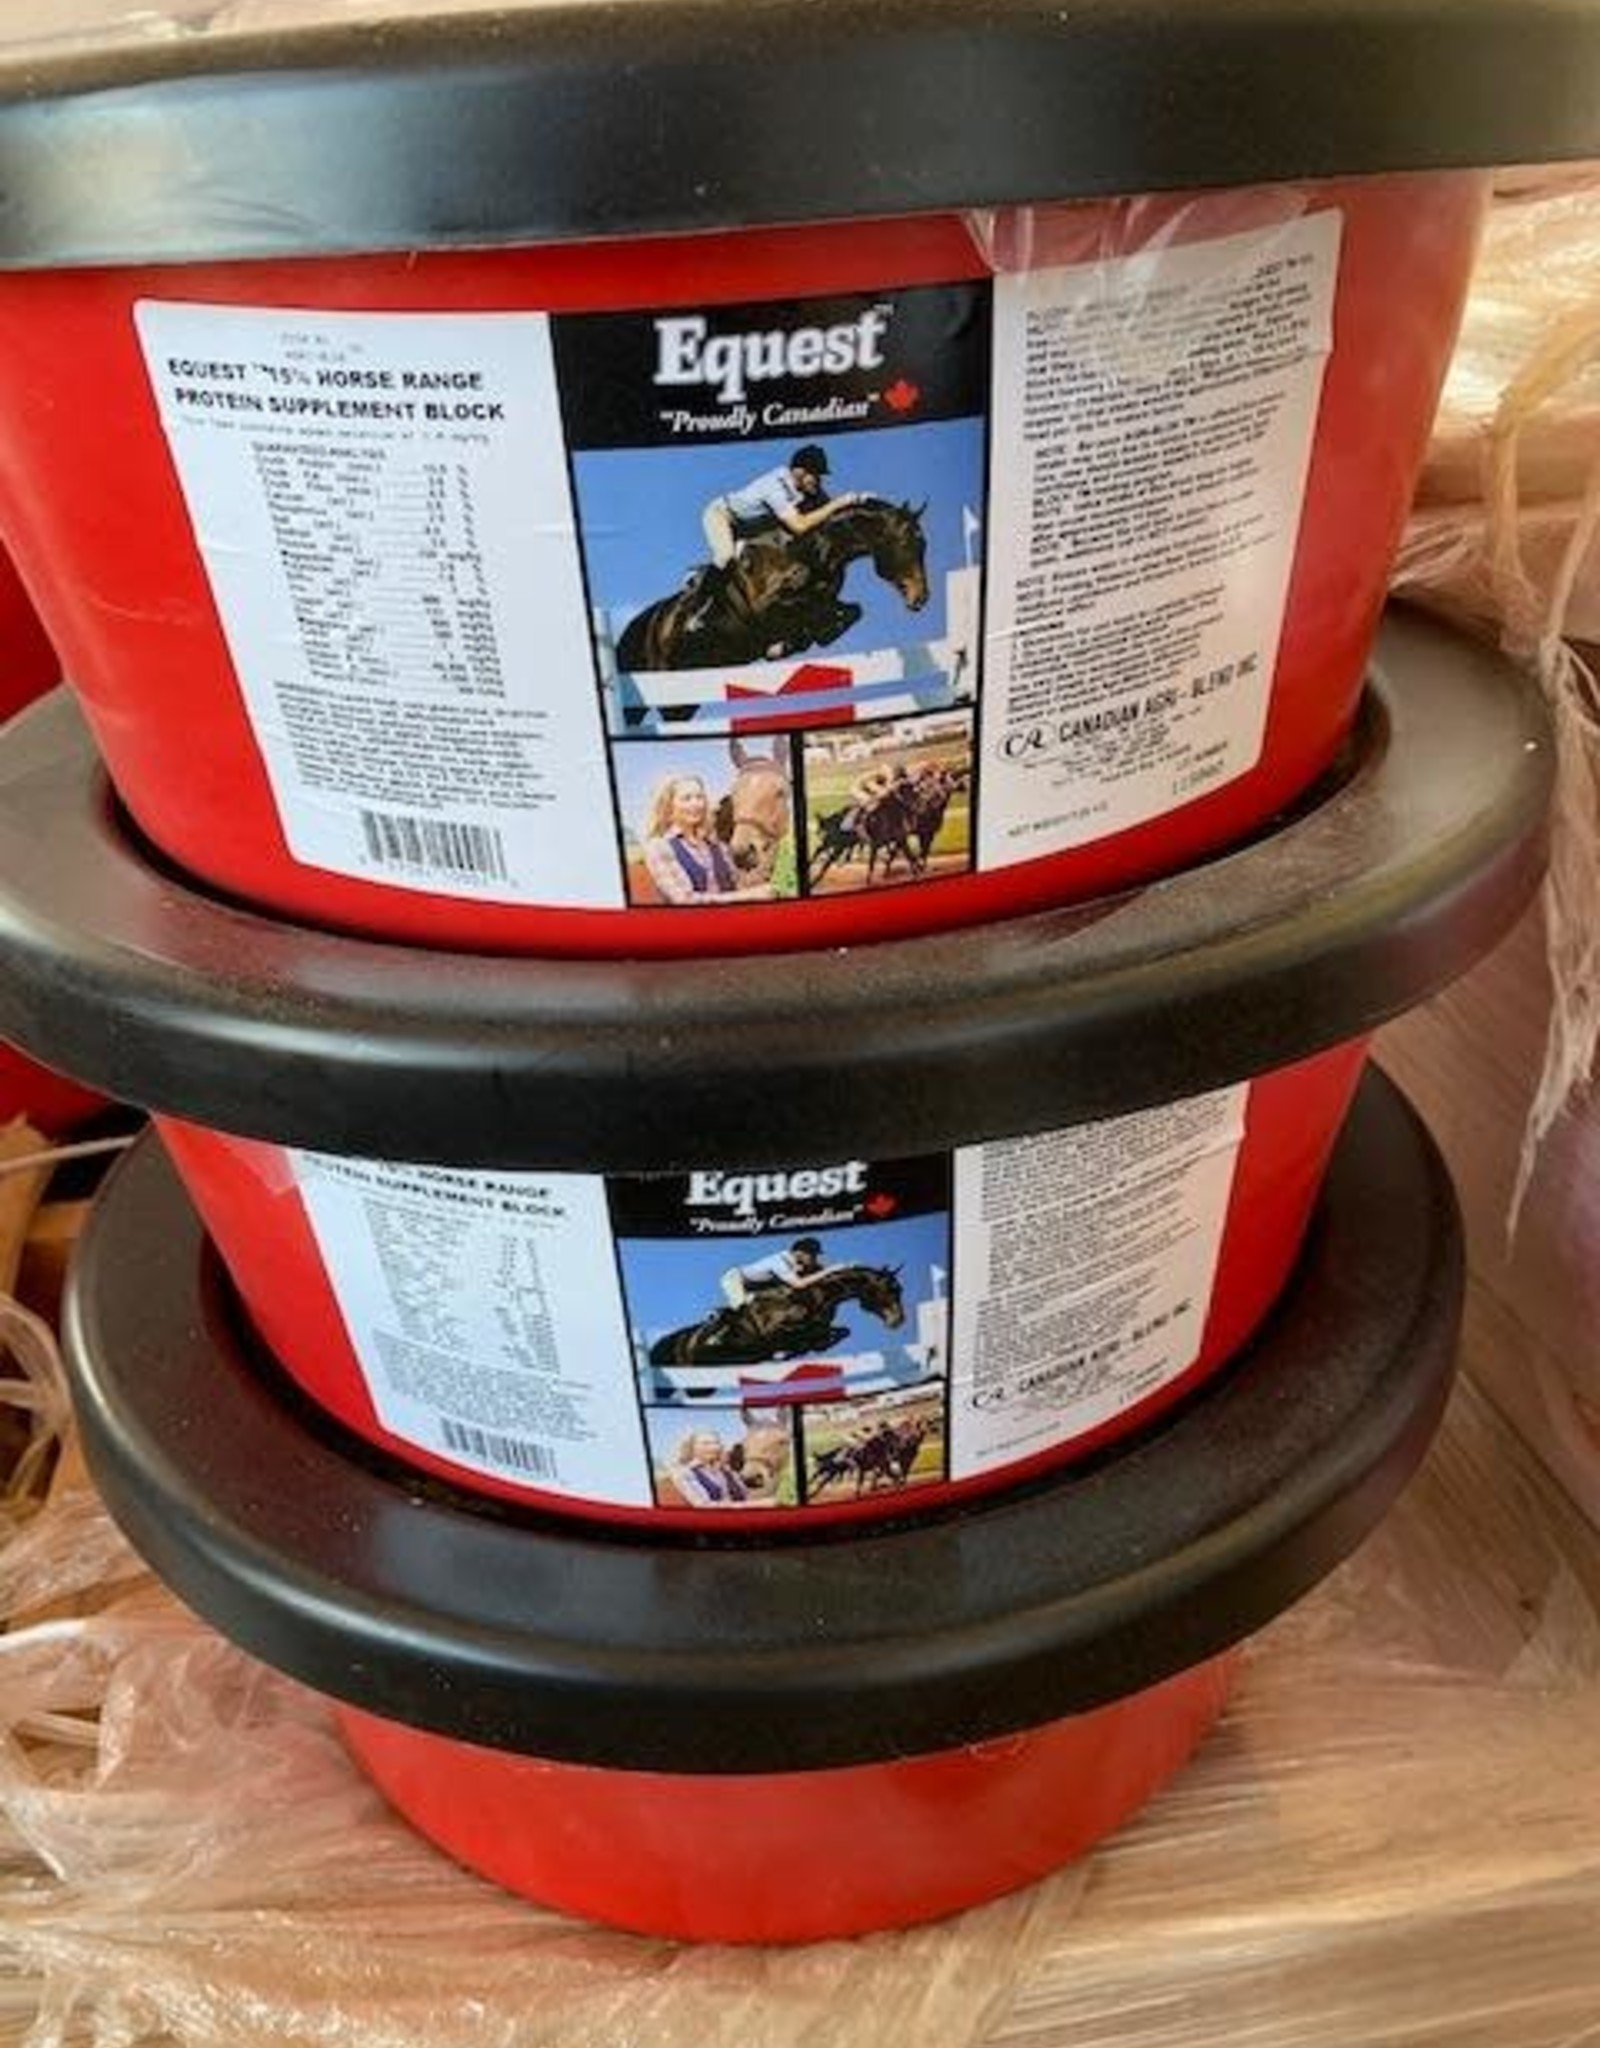 Equest Equest 15% Mineral Tub